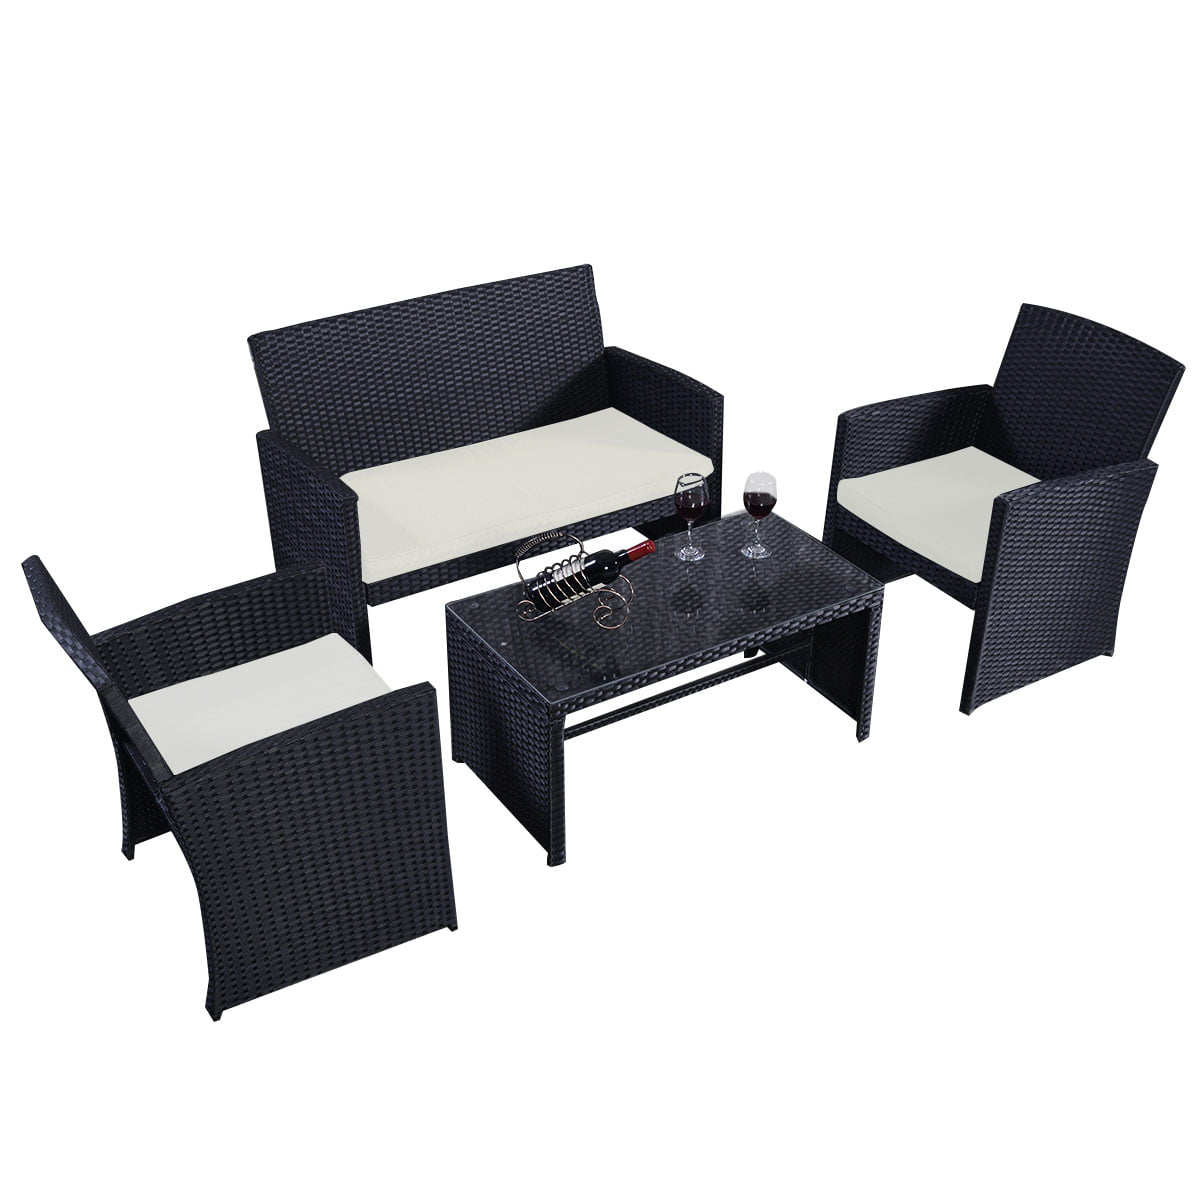 Rattan Garden Furniture 4 Seater costway 4 pc rattan patio furniture set garden lawn sofa wicker